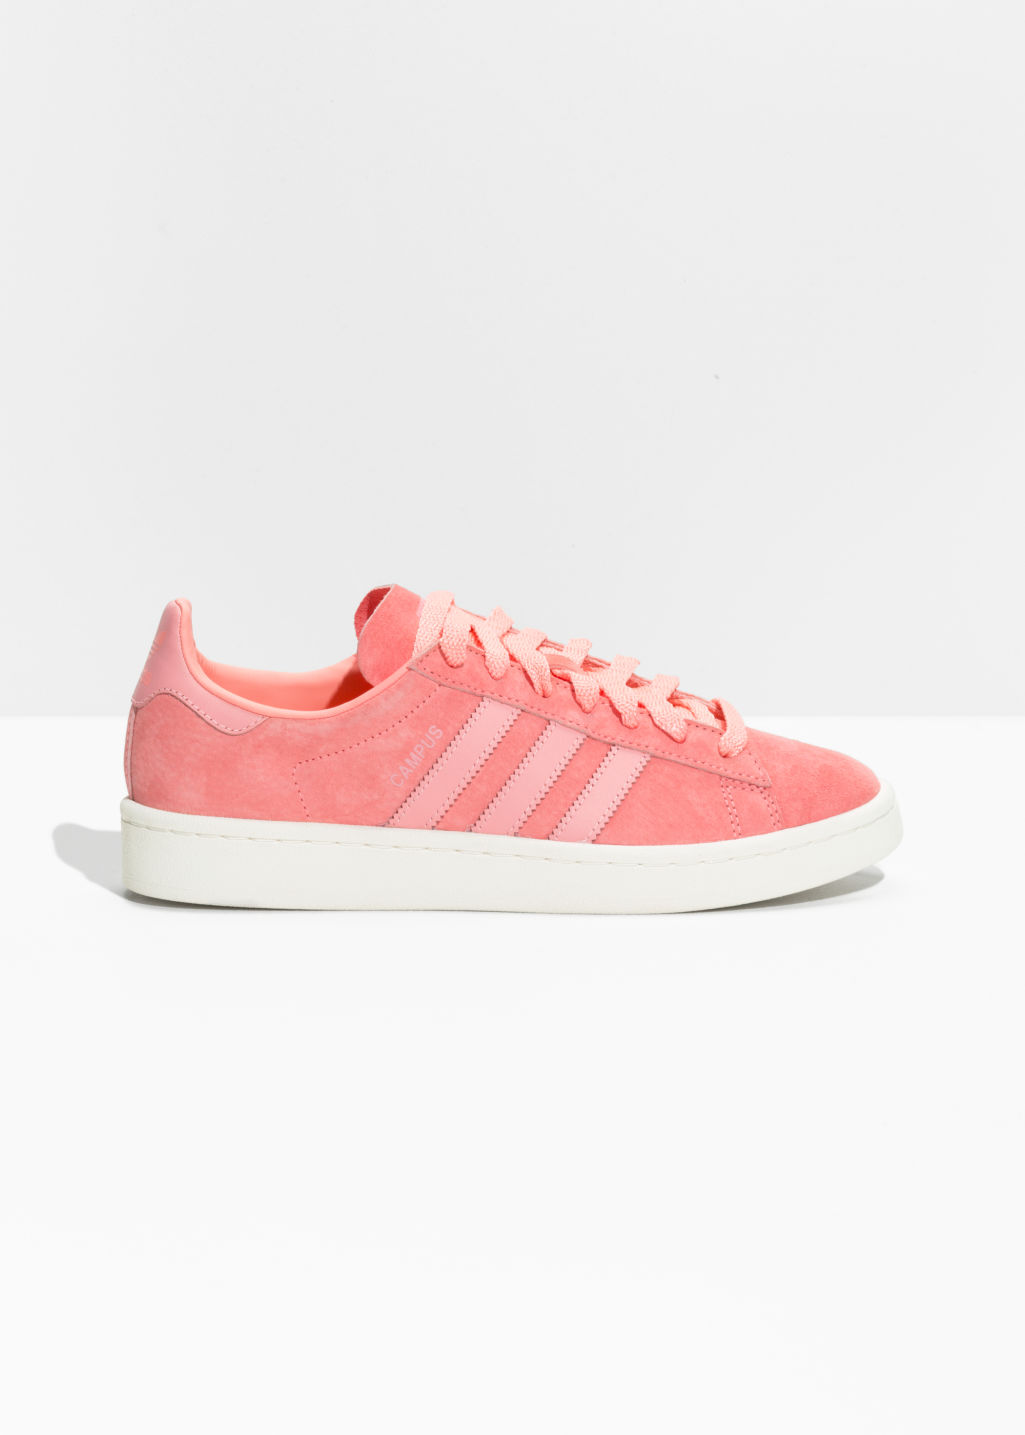 & OTHER STORIES Adidas Campus Free Shipping Cheap Quality avENE0C